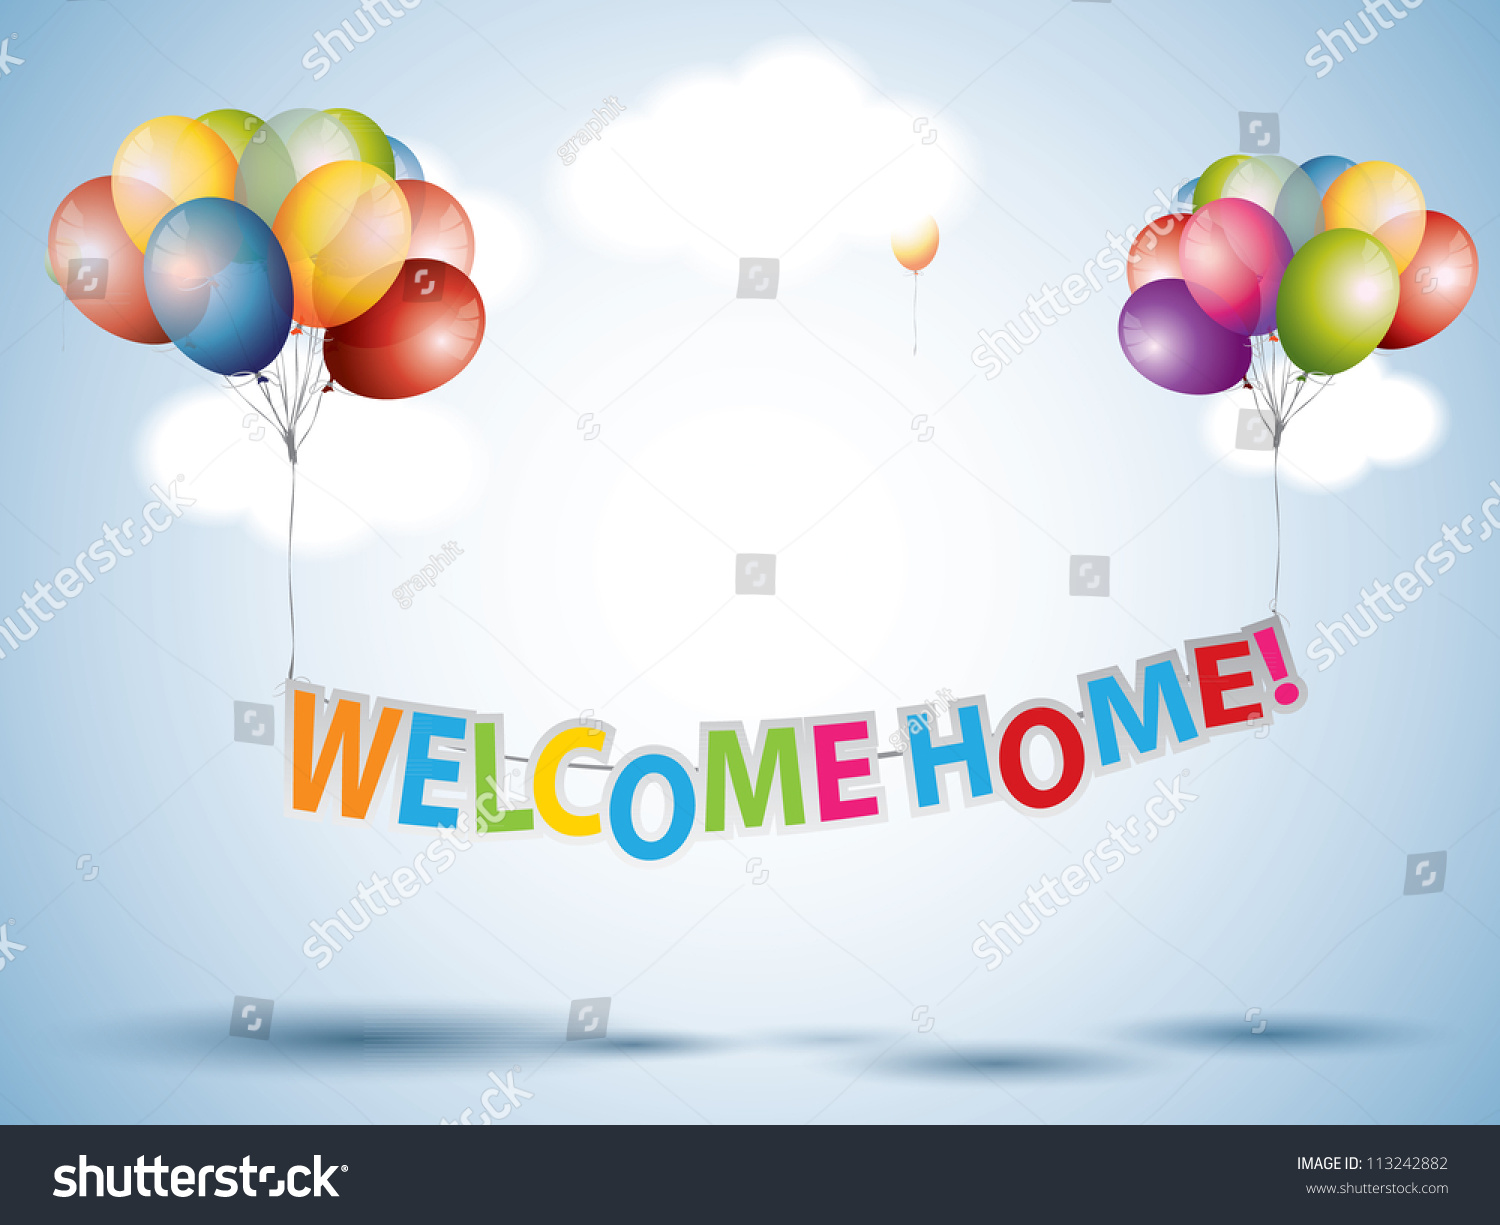 Welcome Home Text Colorful Balloons Stock Vector 113242882 ...